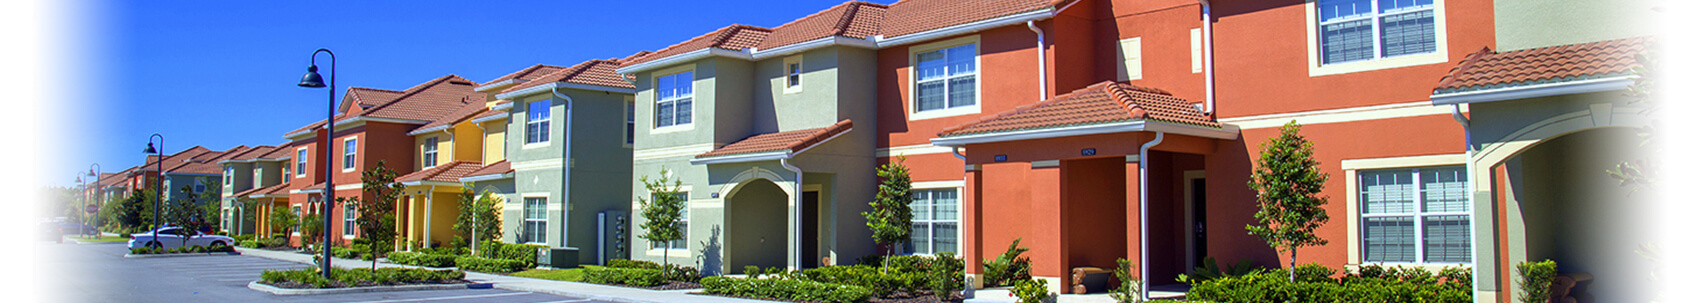 Vacation rental services for your guests